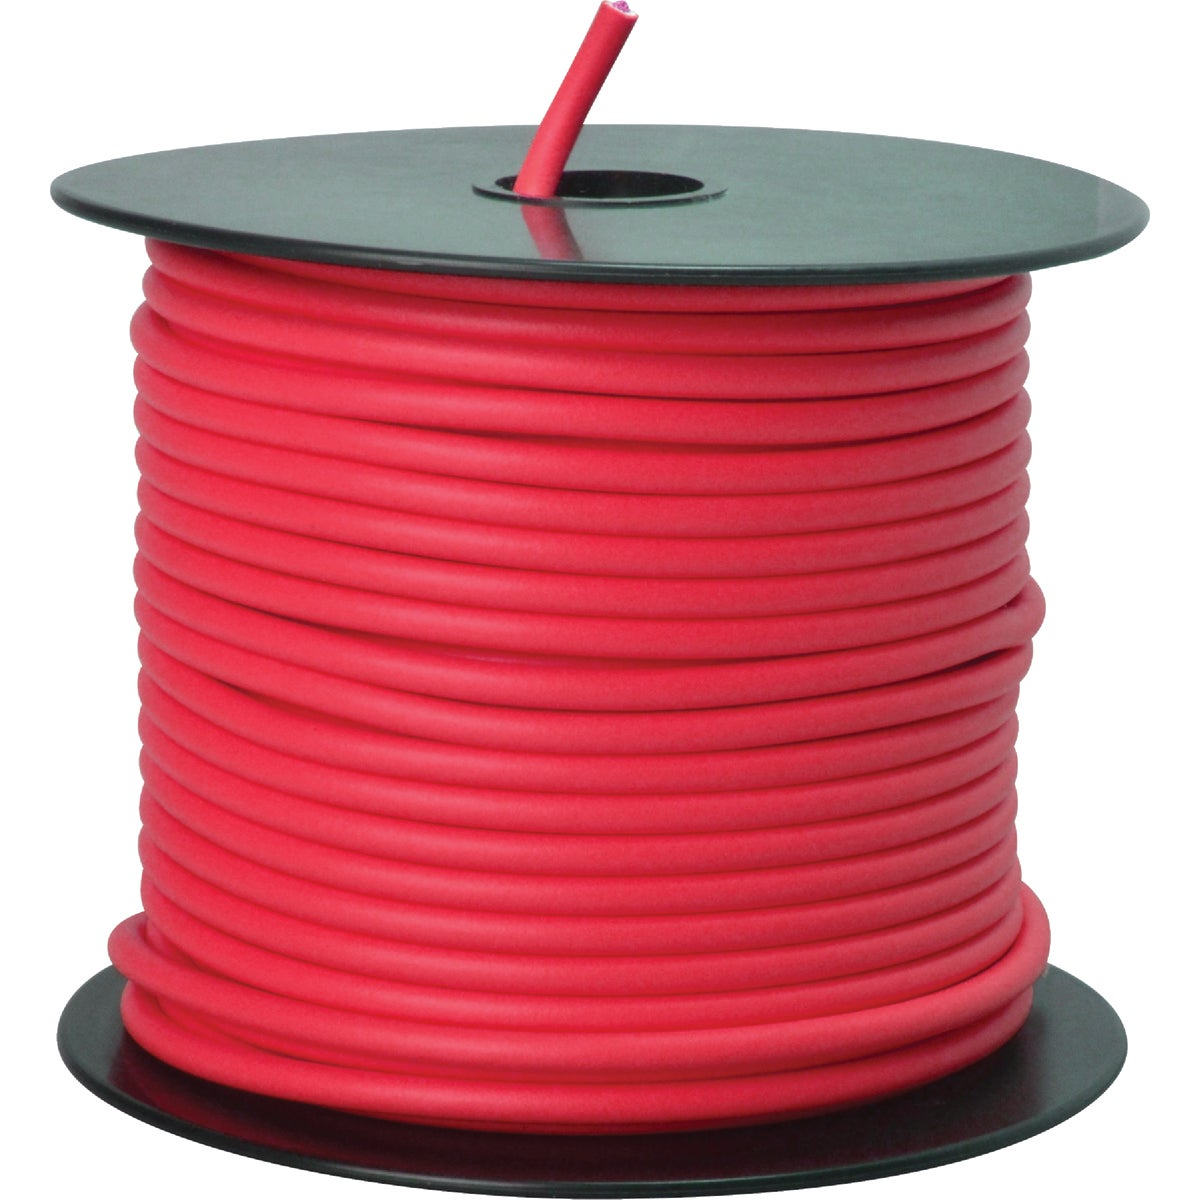 100' 12GA RED AUTO WIRE - 12-100-16 by Woods Wire Coleman